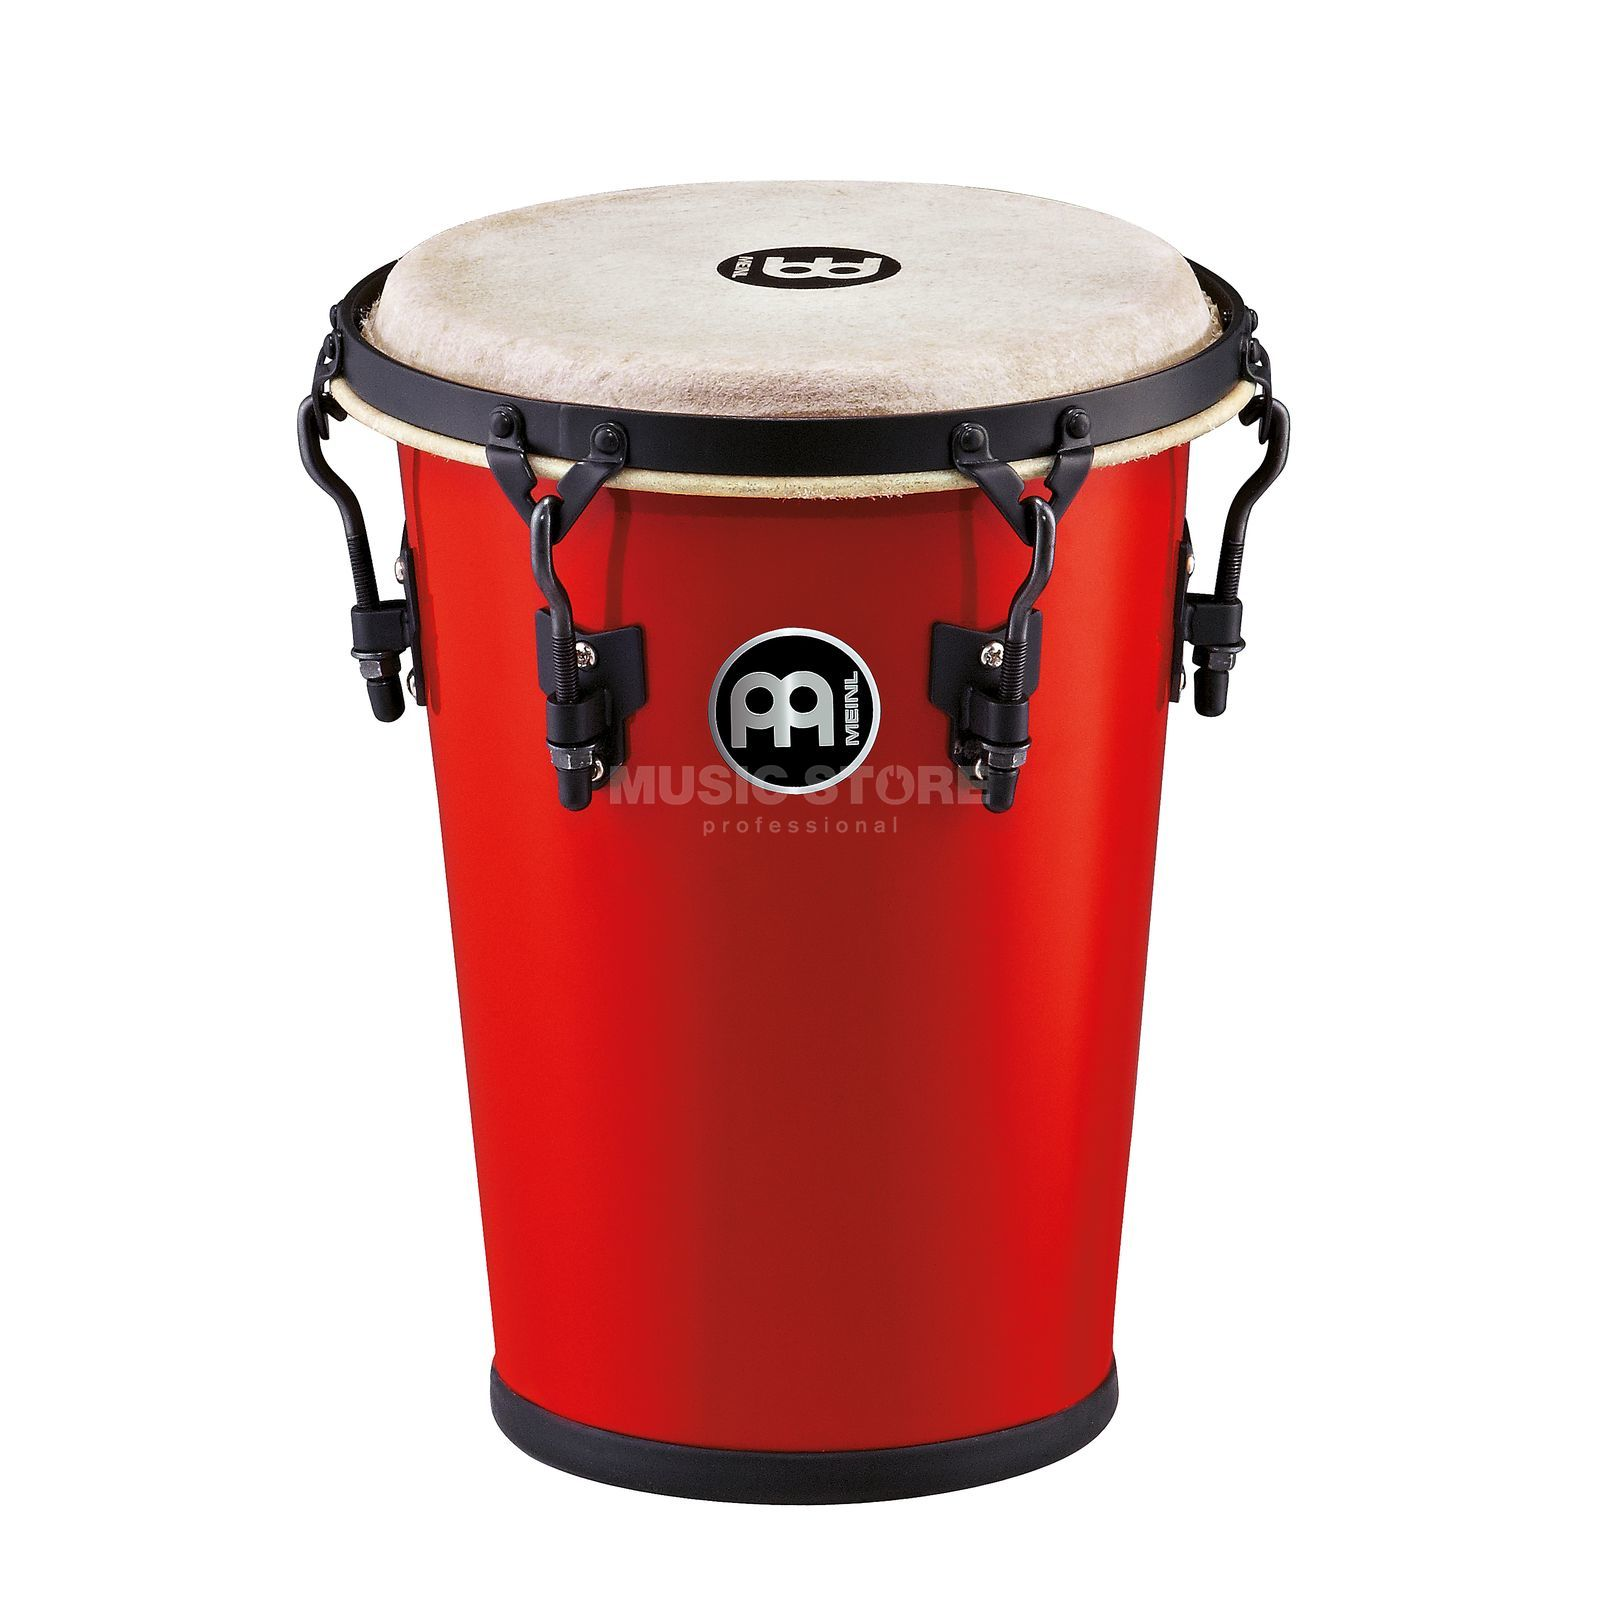 "Meinl Family Drum HFDD2R, 8""x11 1/4"" Fiberglass, Red Product Image"